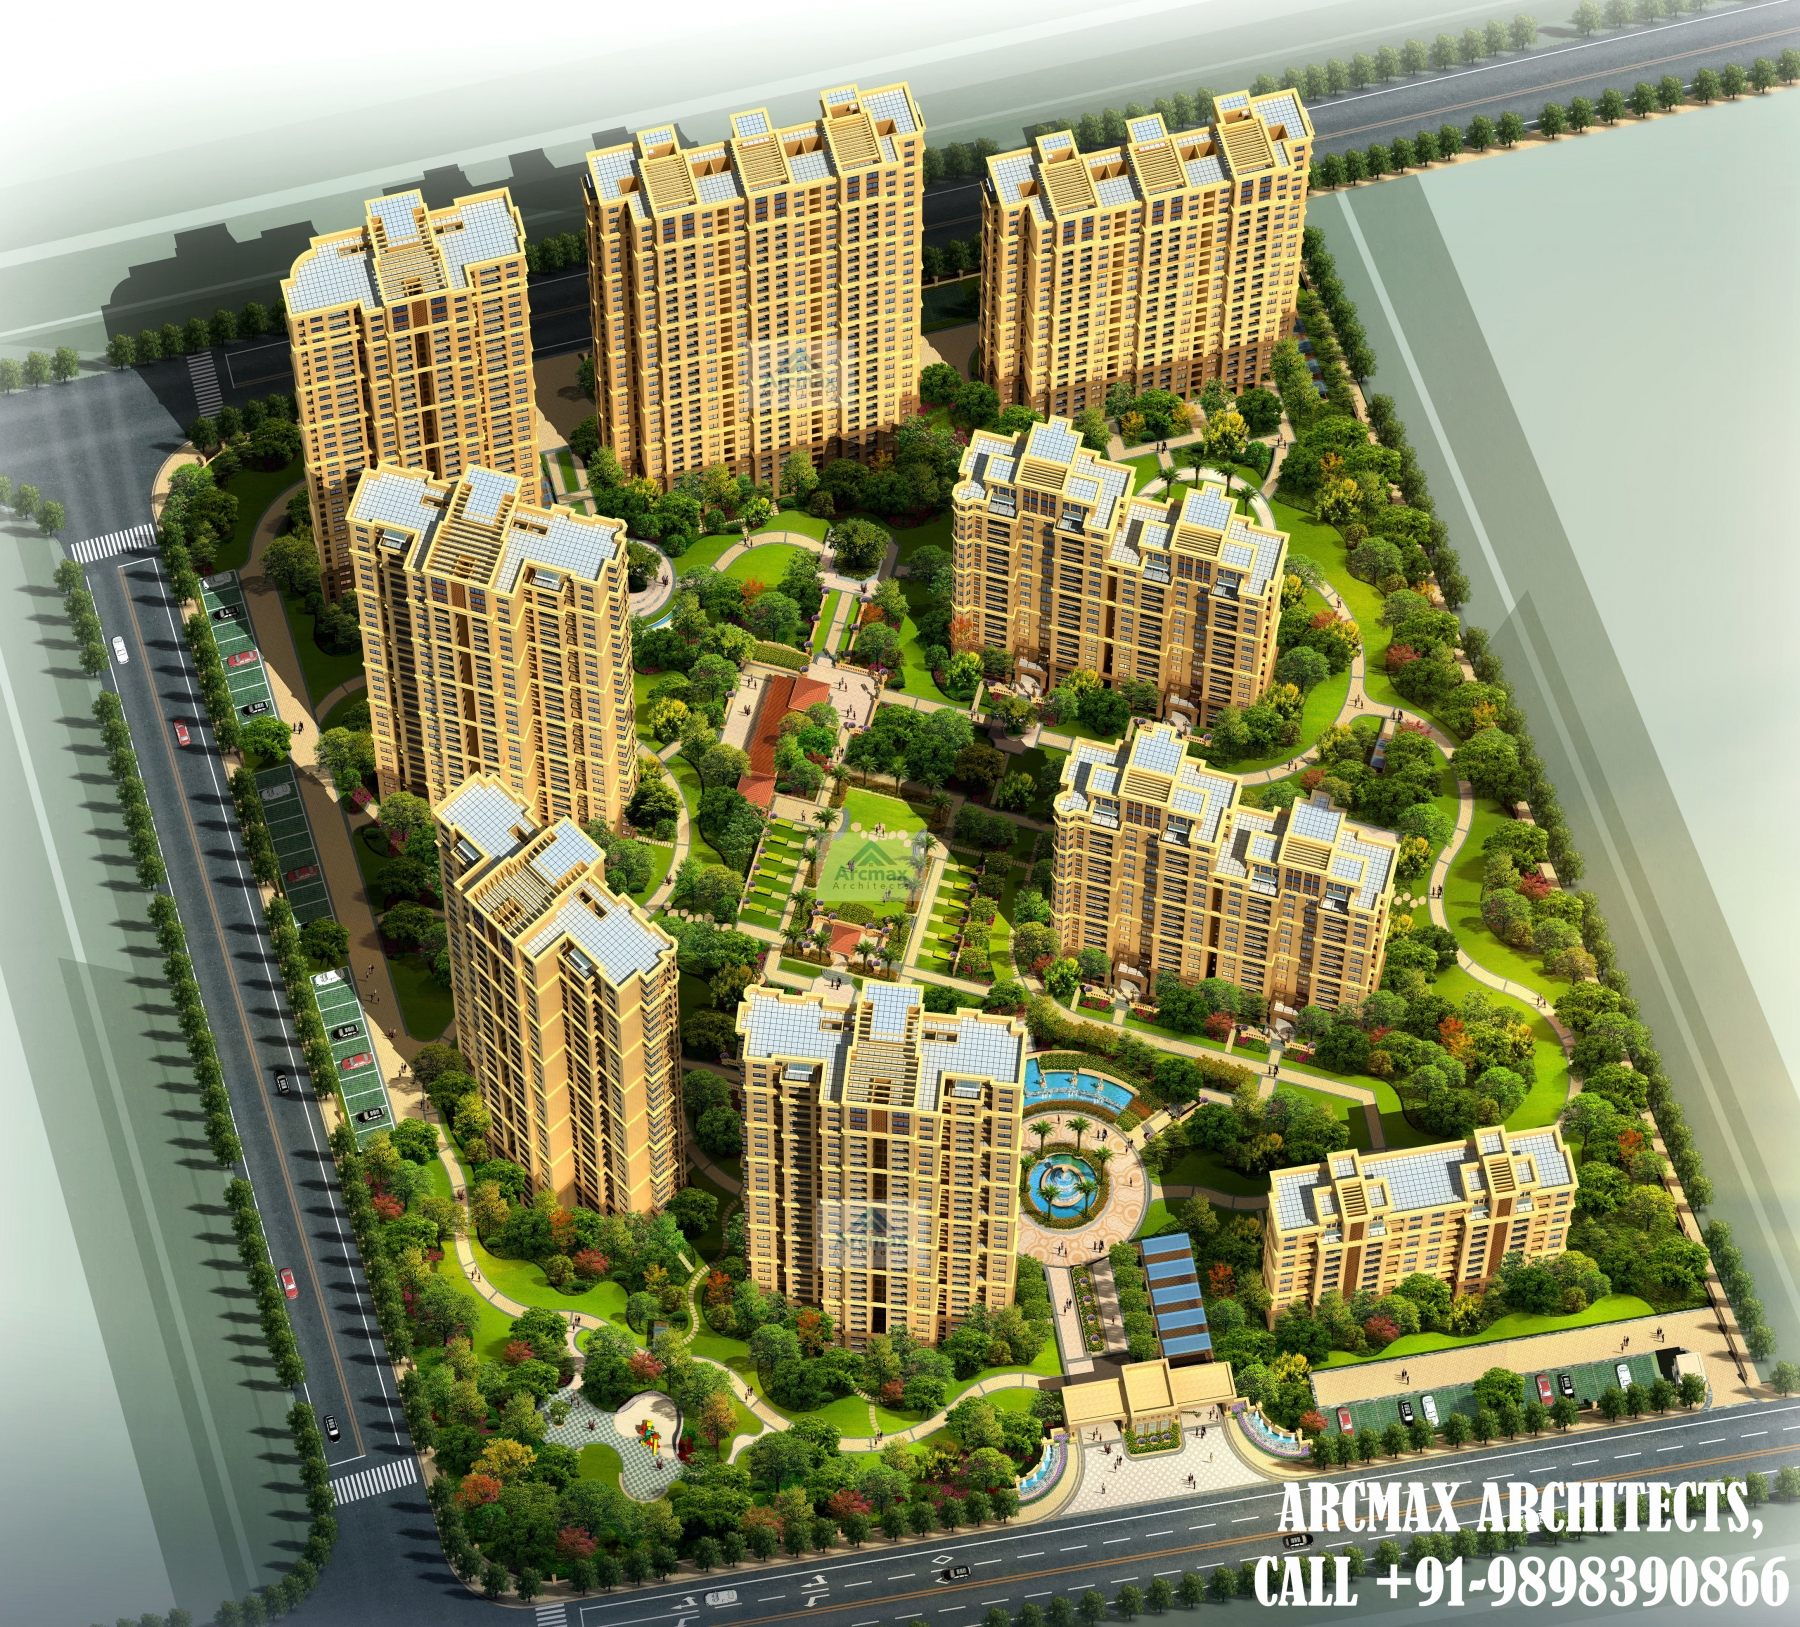 Highend Luxury Residential Apartment Design | Arcmax Architects